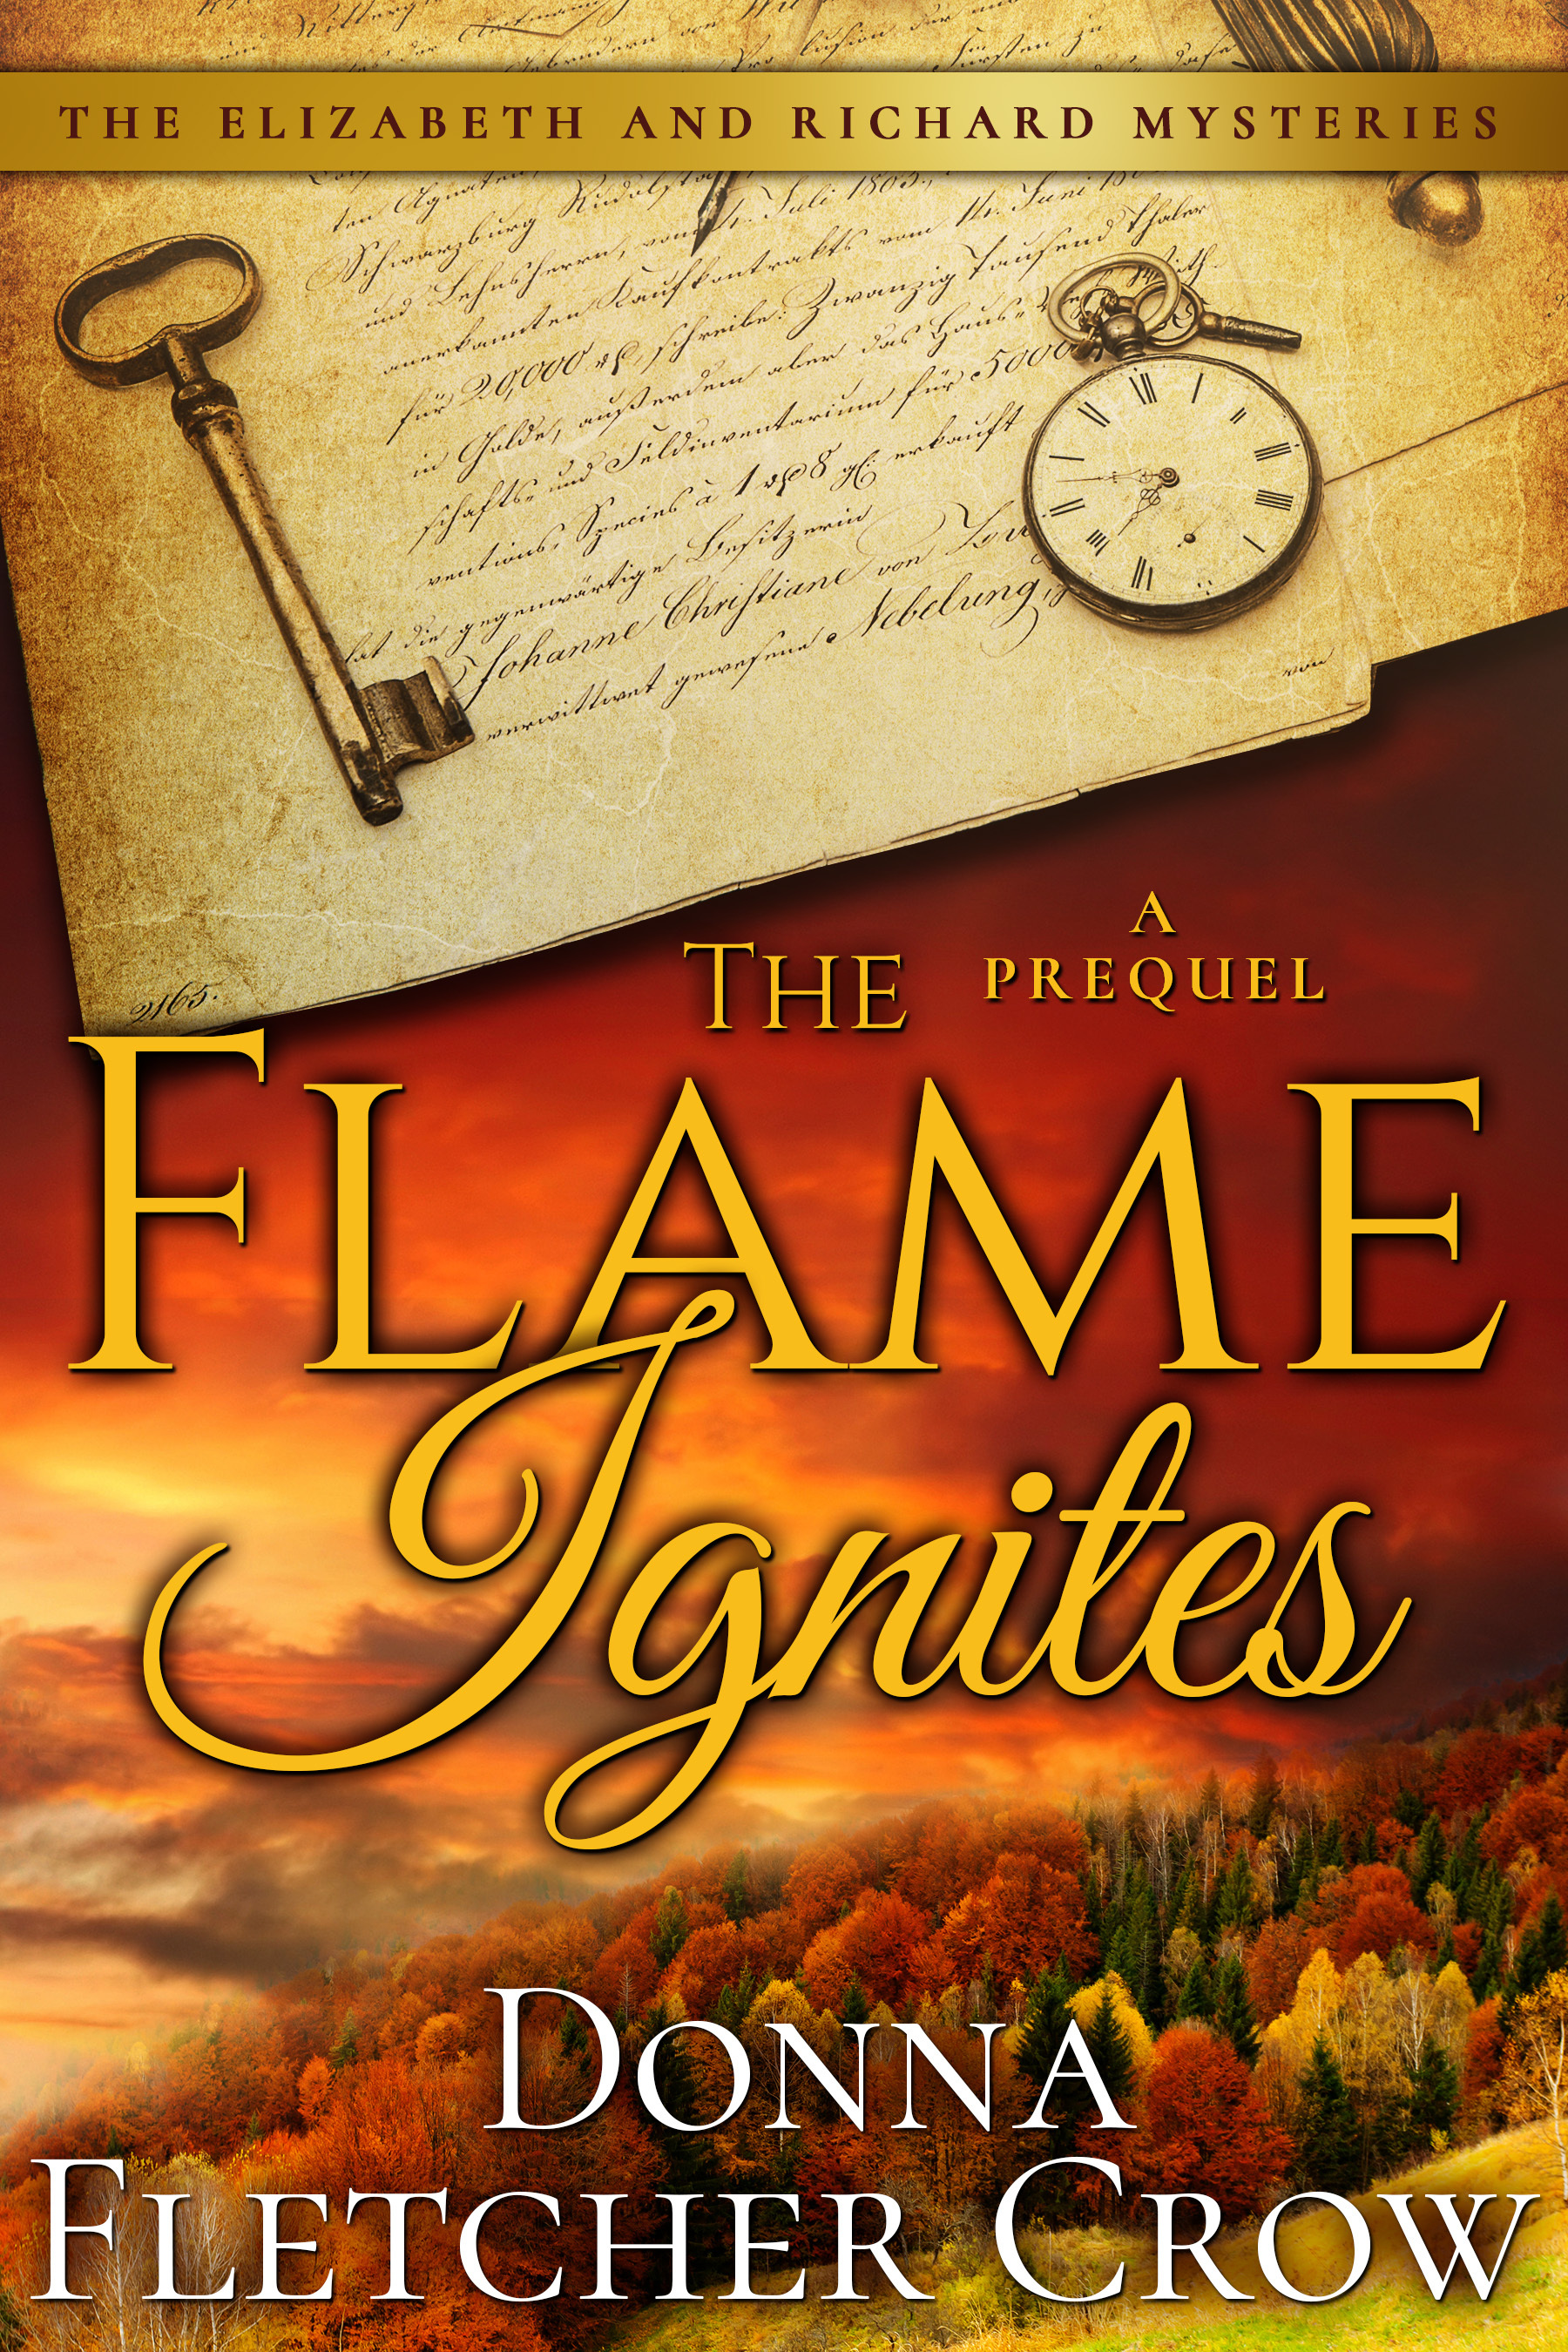 The Flame Ignites (The Elizabeth and Richard Mysteries #.5) Donna Fletcher Crow